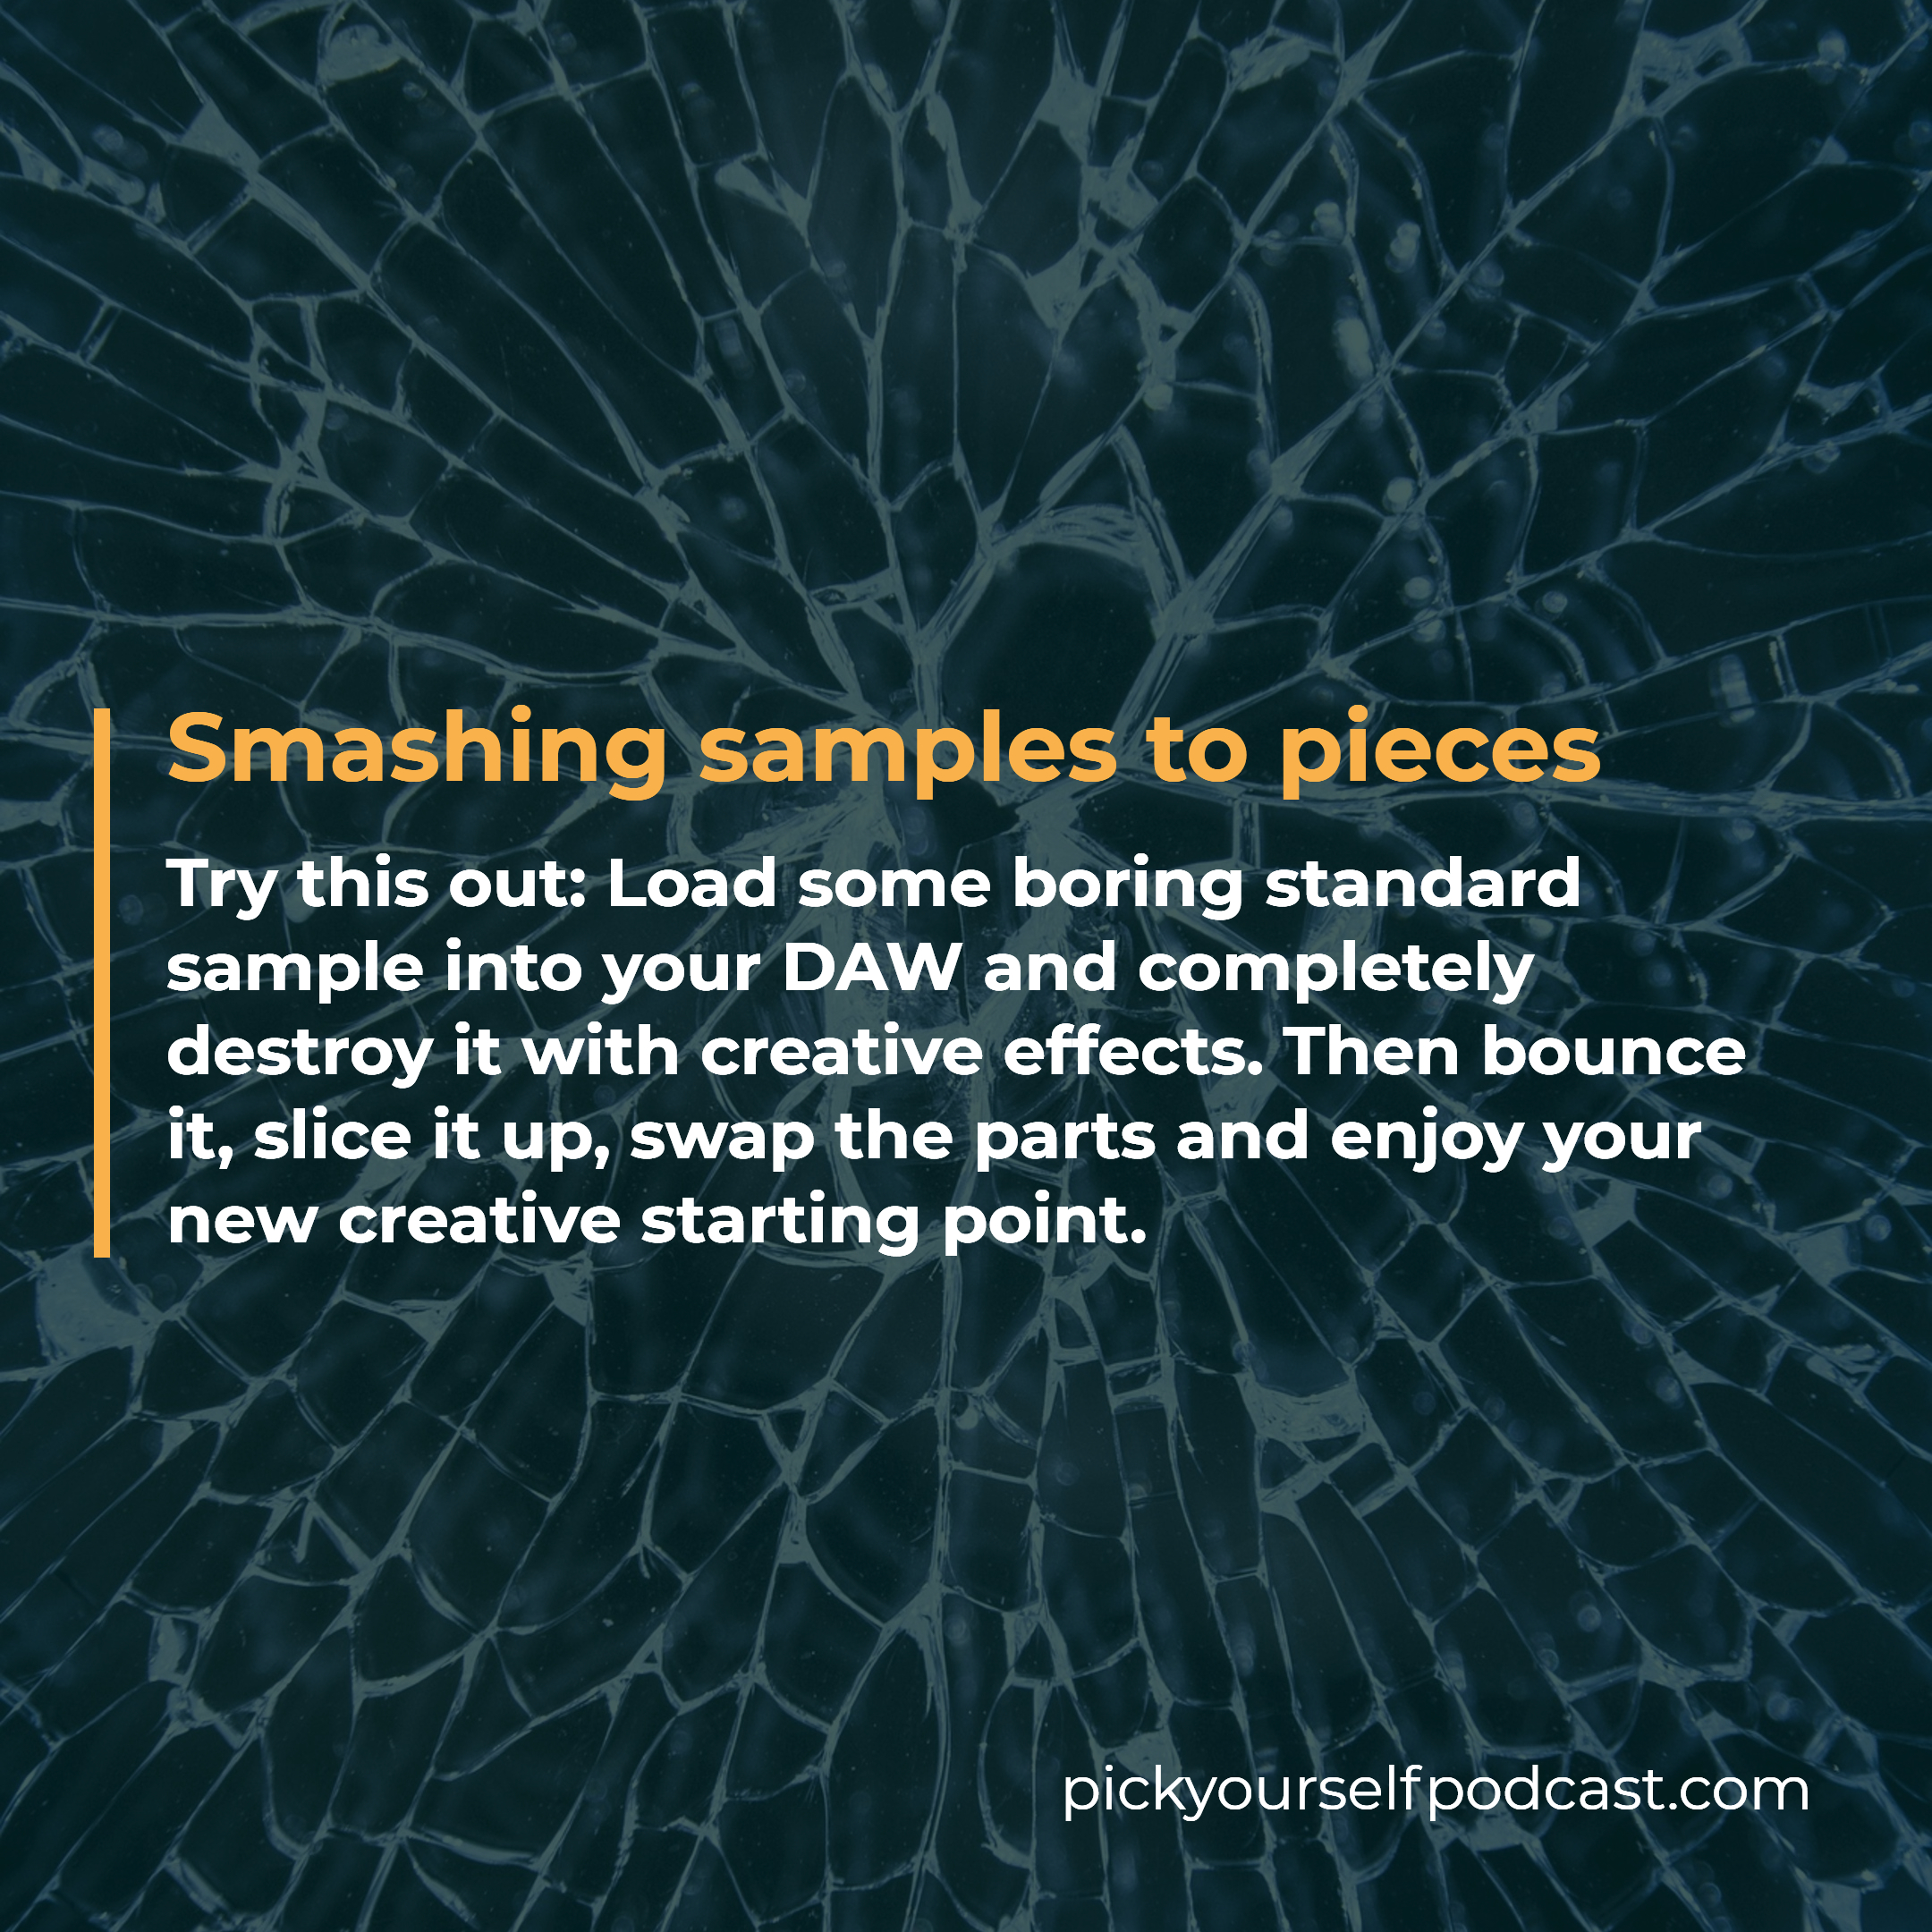 Come up with song ideas visual 04. It says: Load some boring standard sample into your DAW and completely destroy it with creative effects.